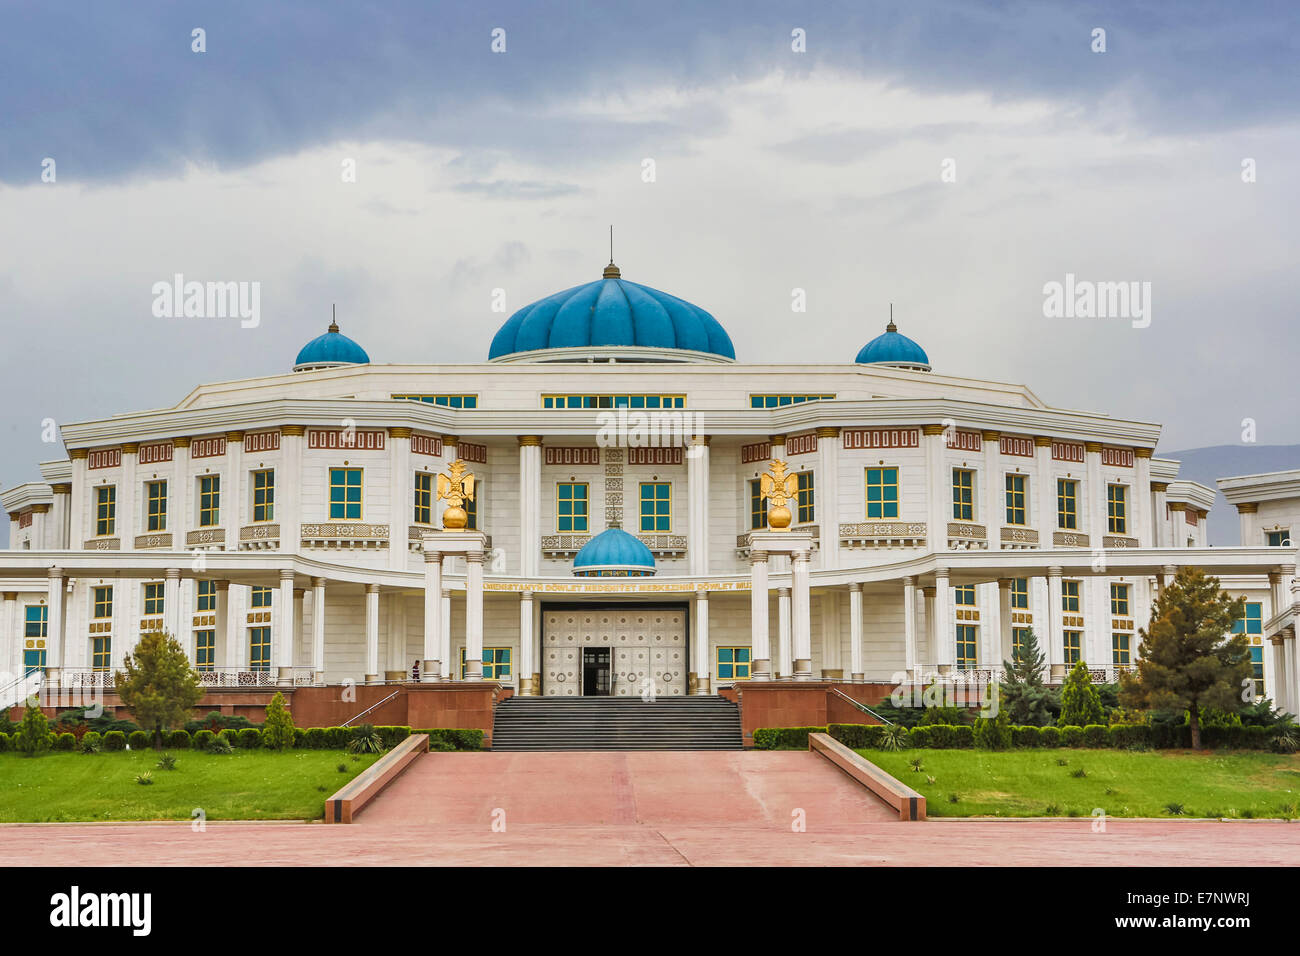 Ashgabat, Ethnography, Turkmenistan, Central Asia, Asia, architecture, city, culture, dome, history, marble, museum, - Stock Image